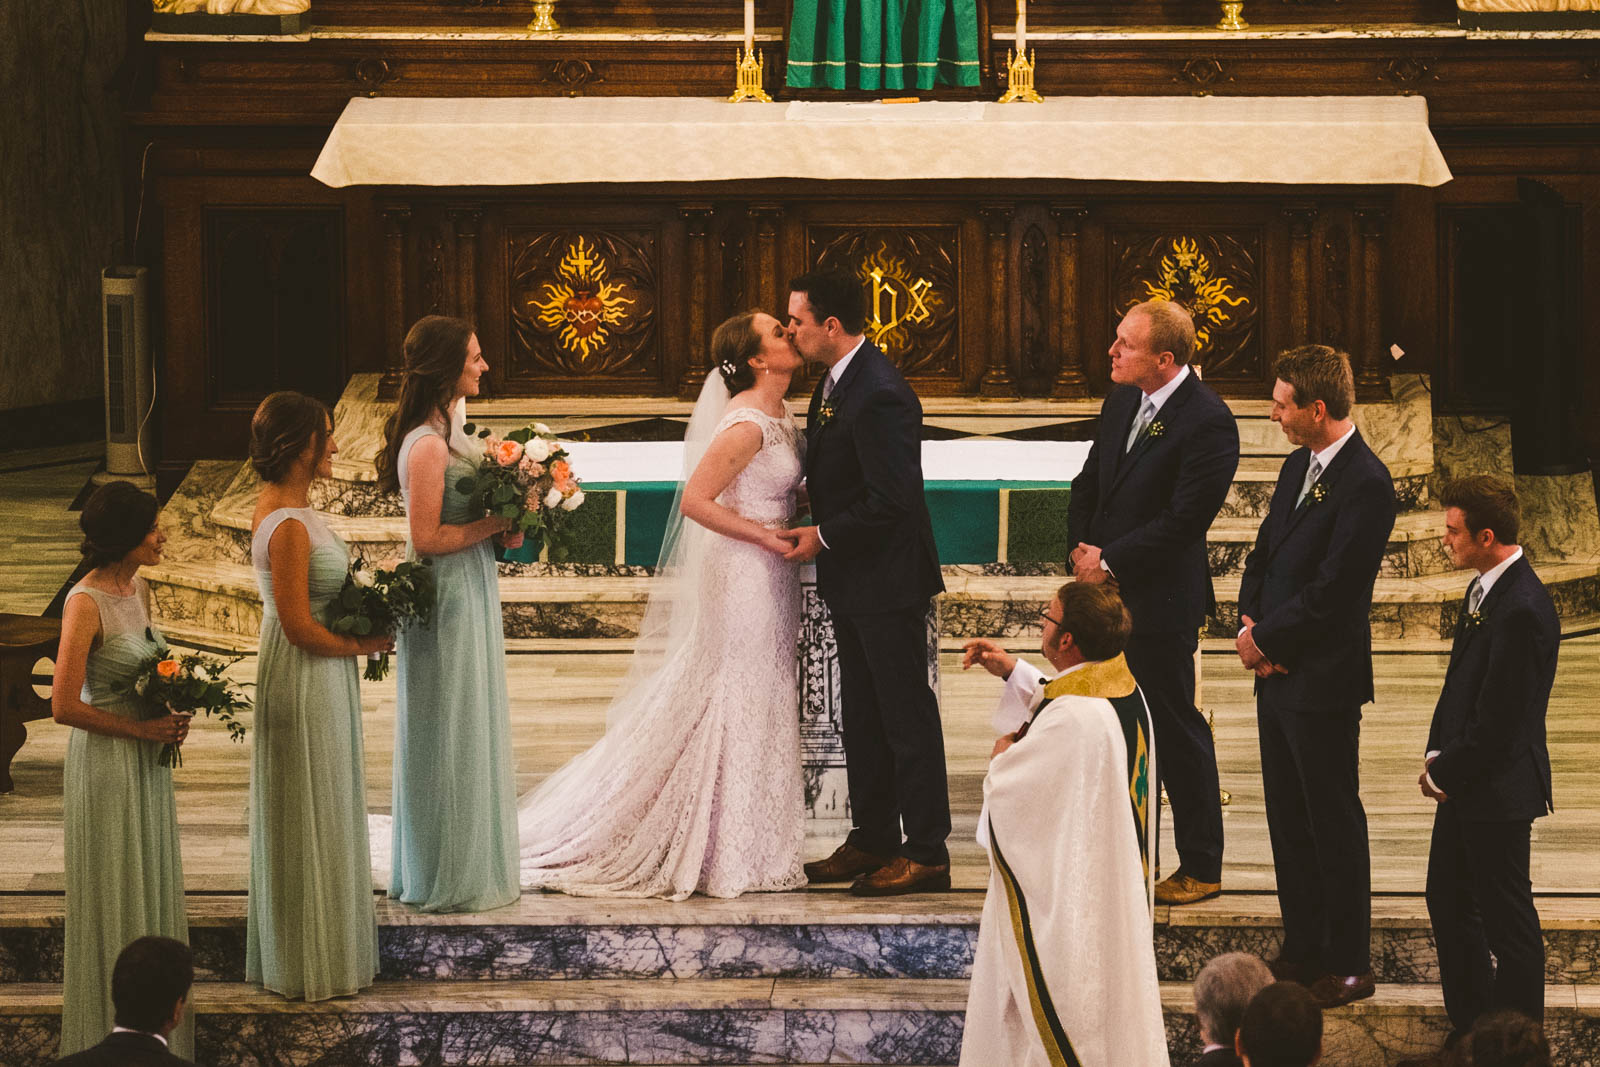 Toledo Wedding Photographers Capture Bride and Groom's First Kiss at Historic Church of Saint Patrick